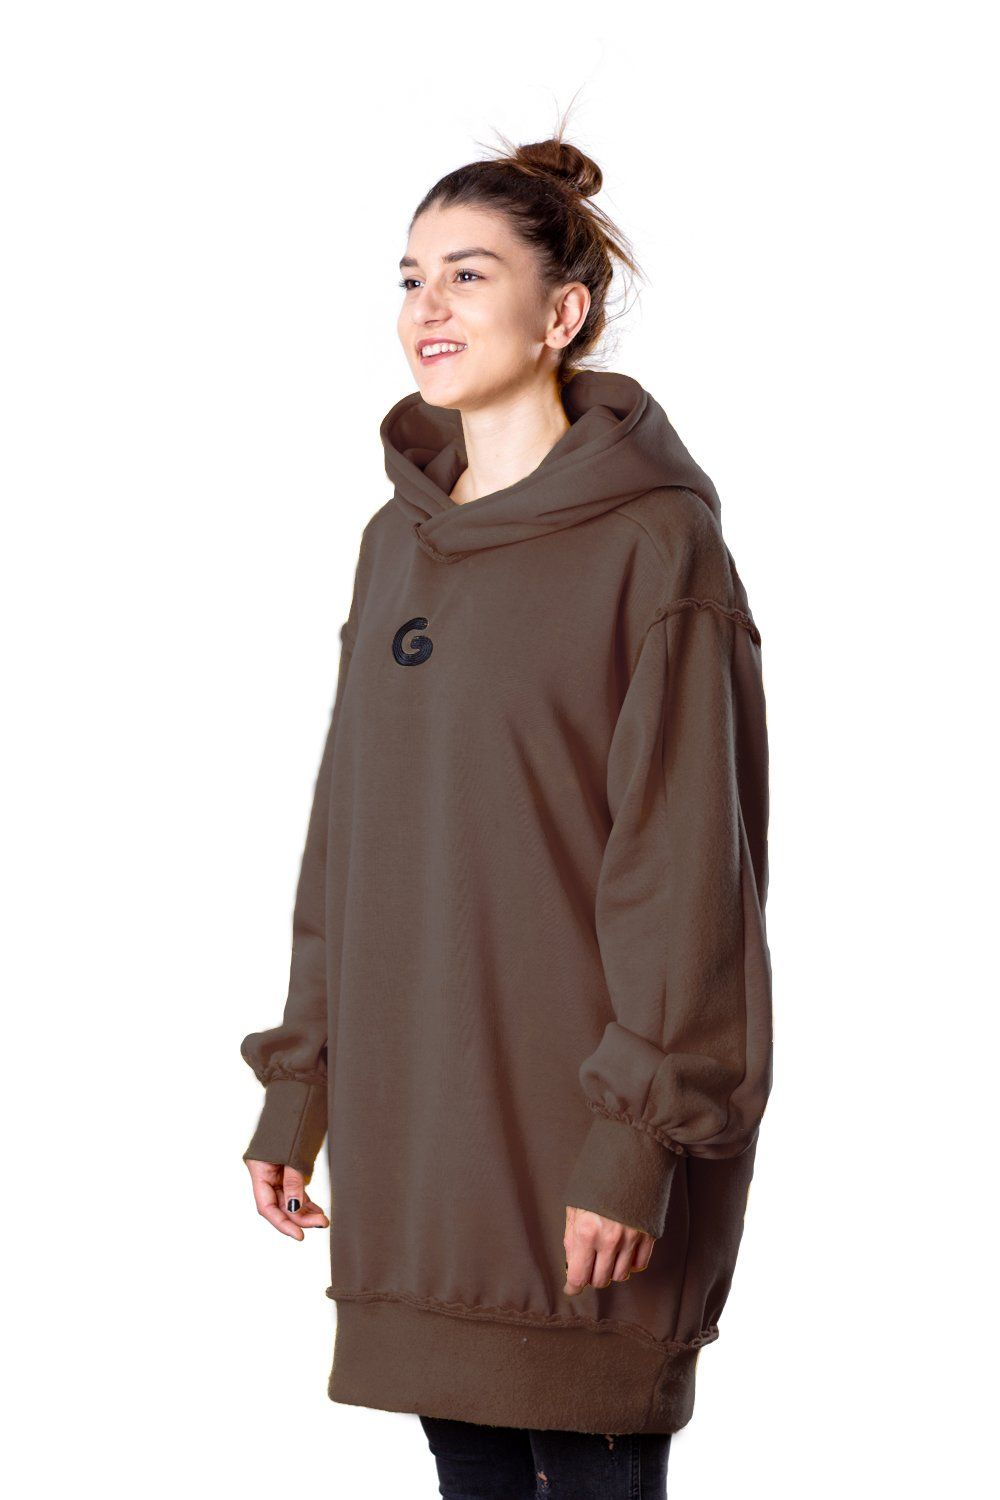 TheG Fresh Oversize Hoody Woman // brown